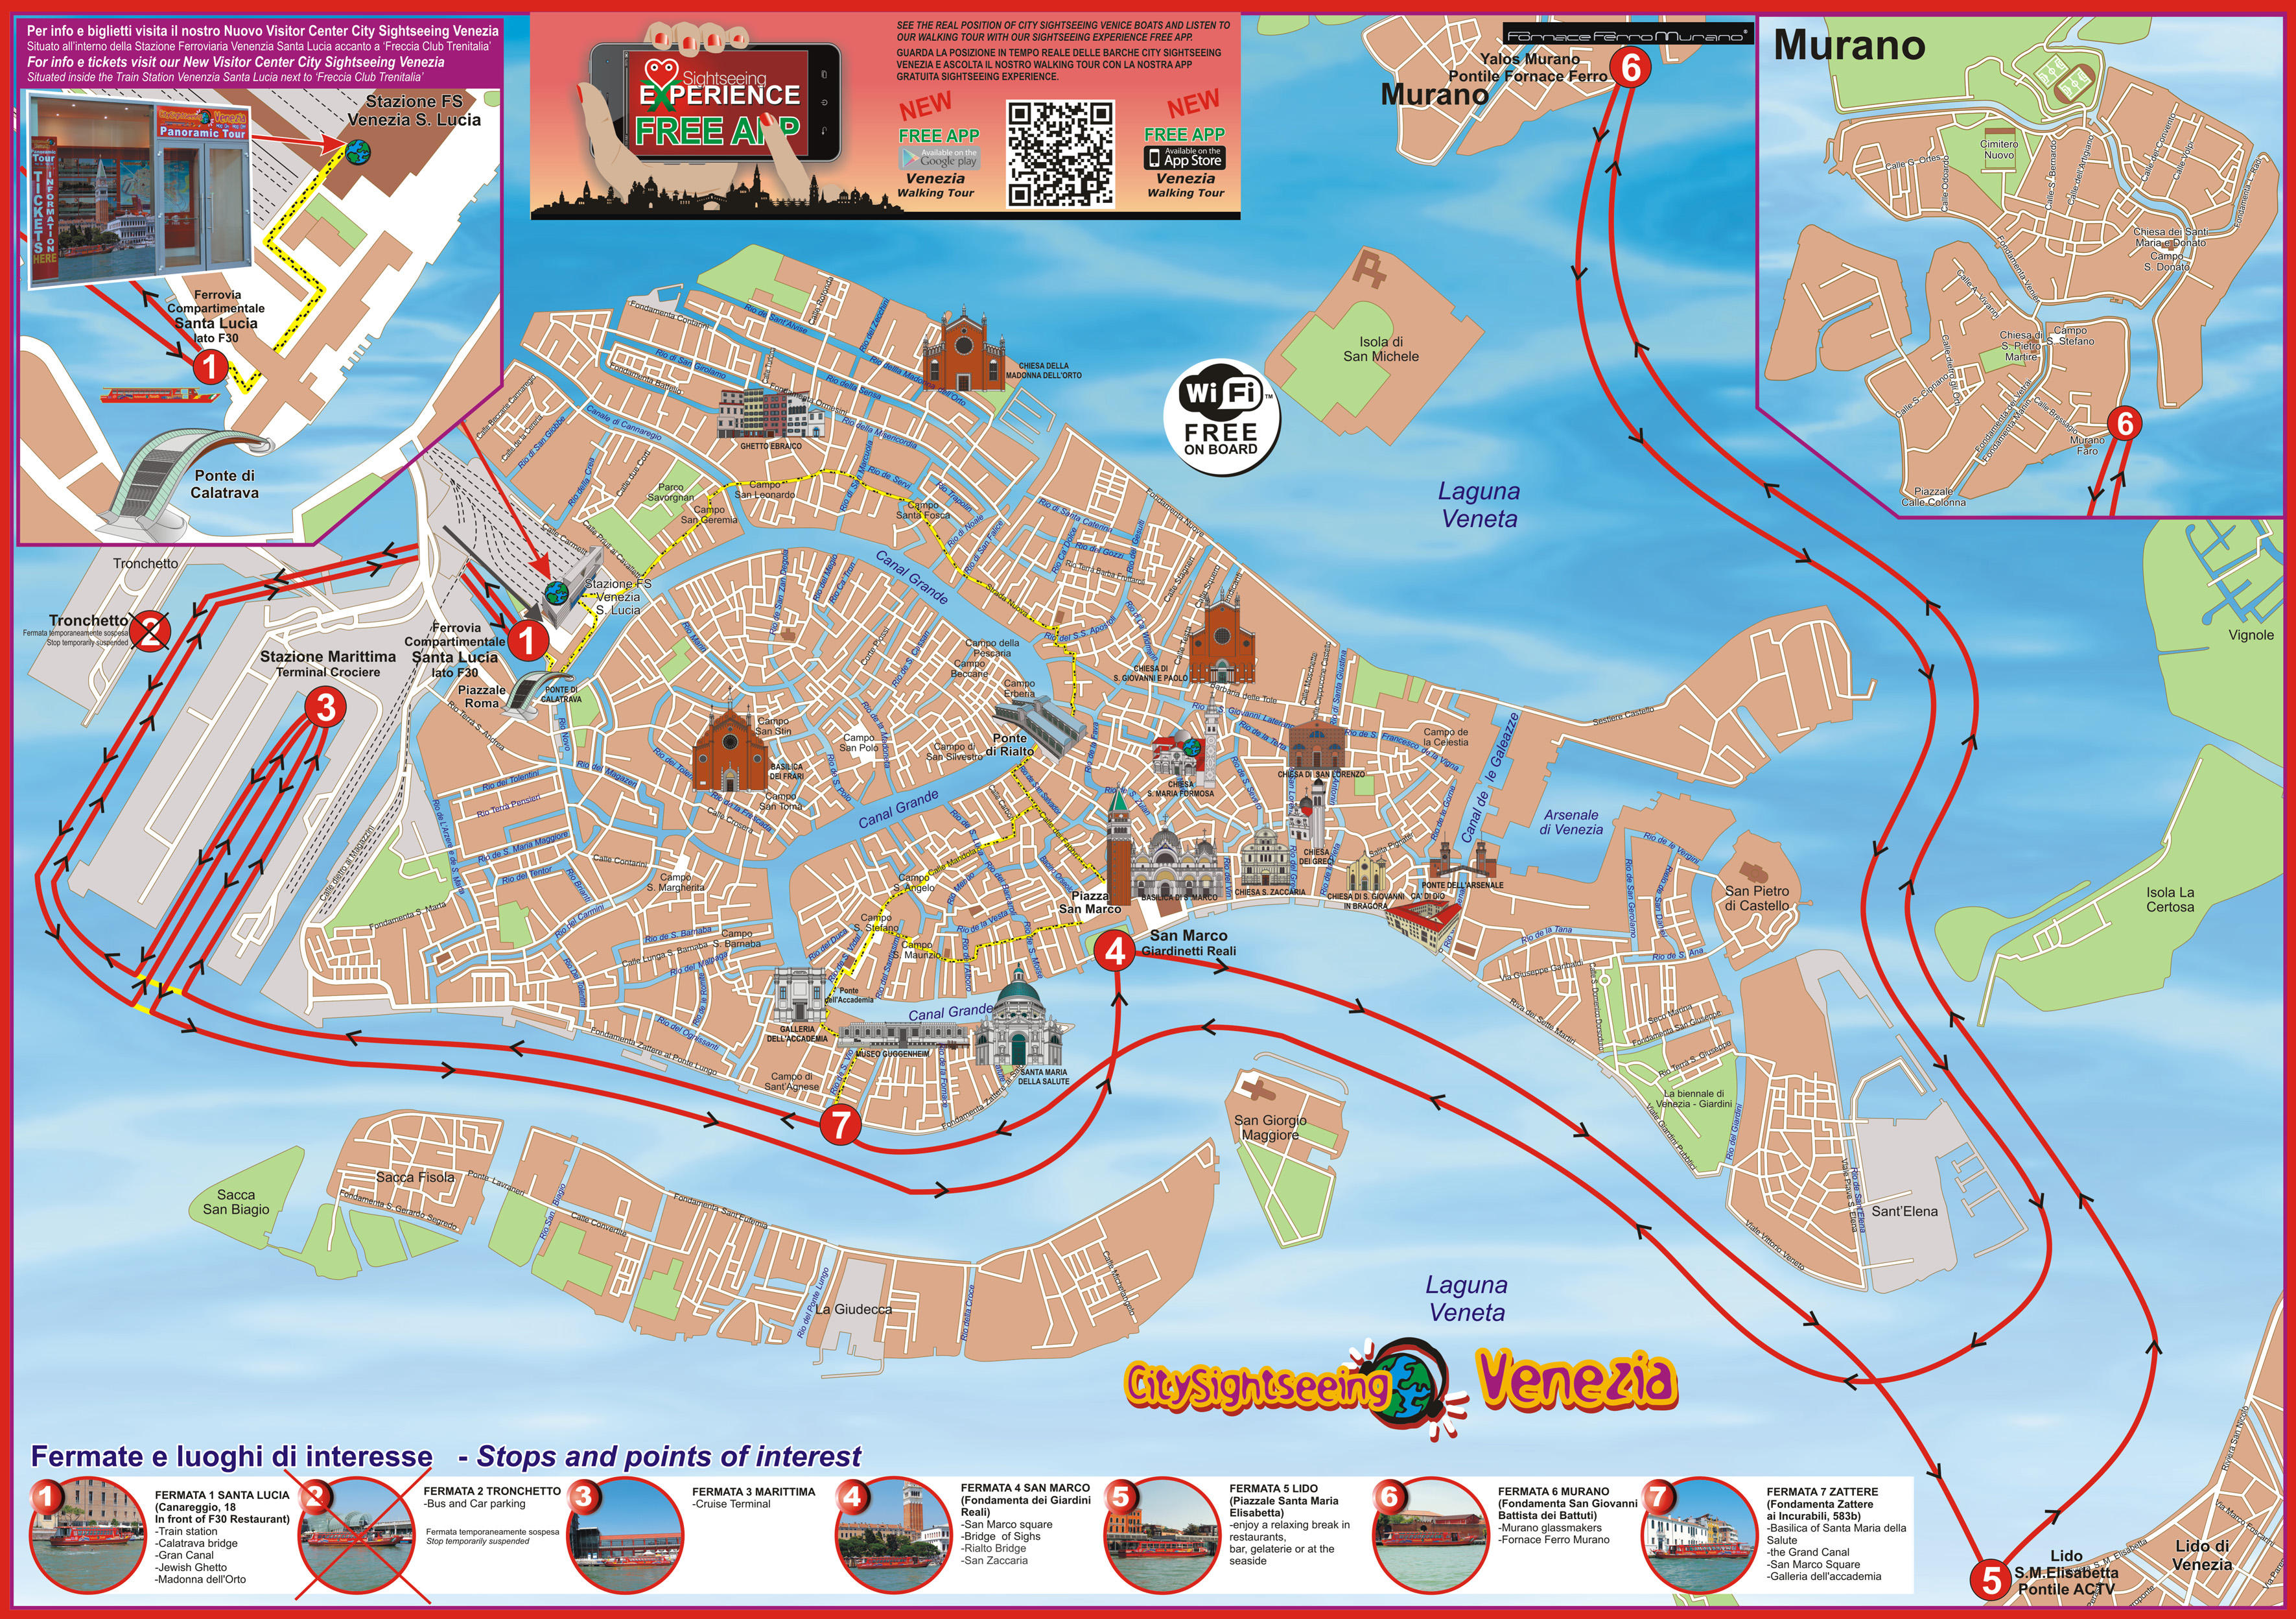 Venice City Sightseeing HopOn HopOff Tour in Venice Italy – Venice Map Tourist